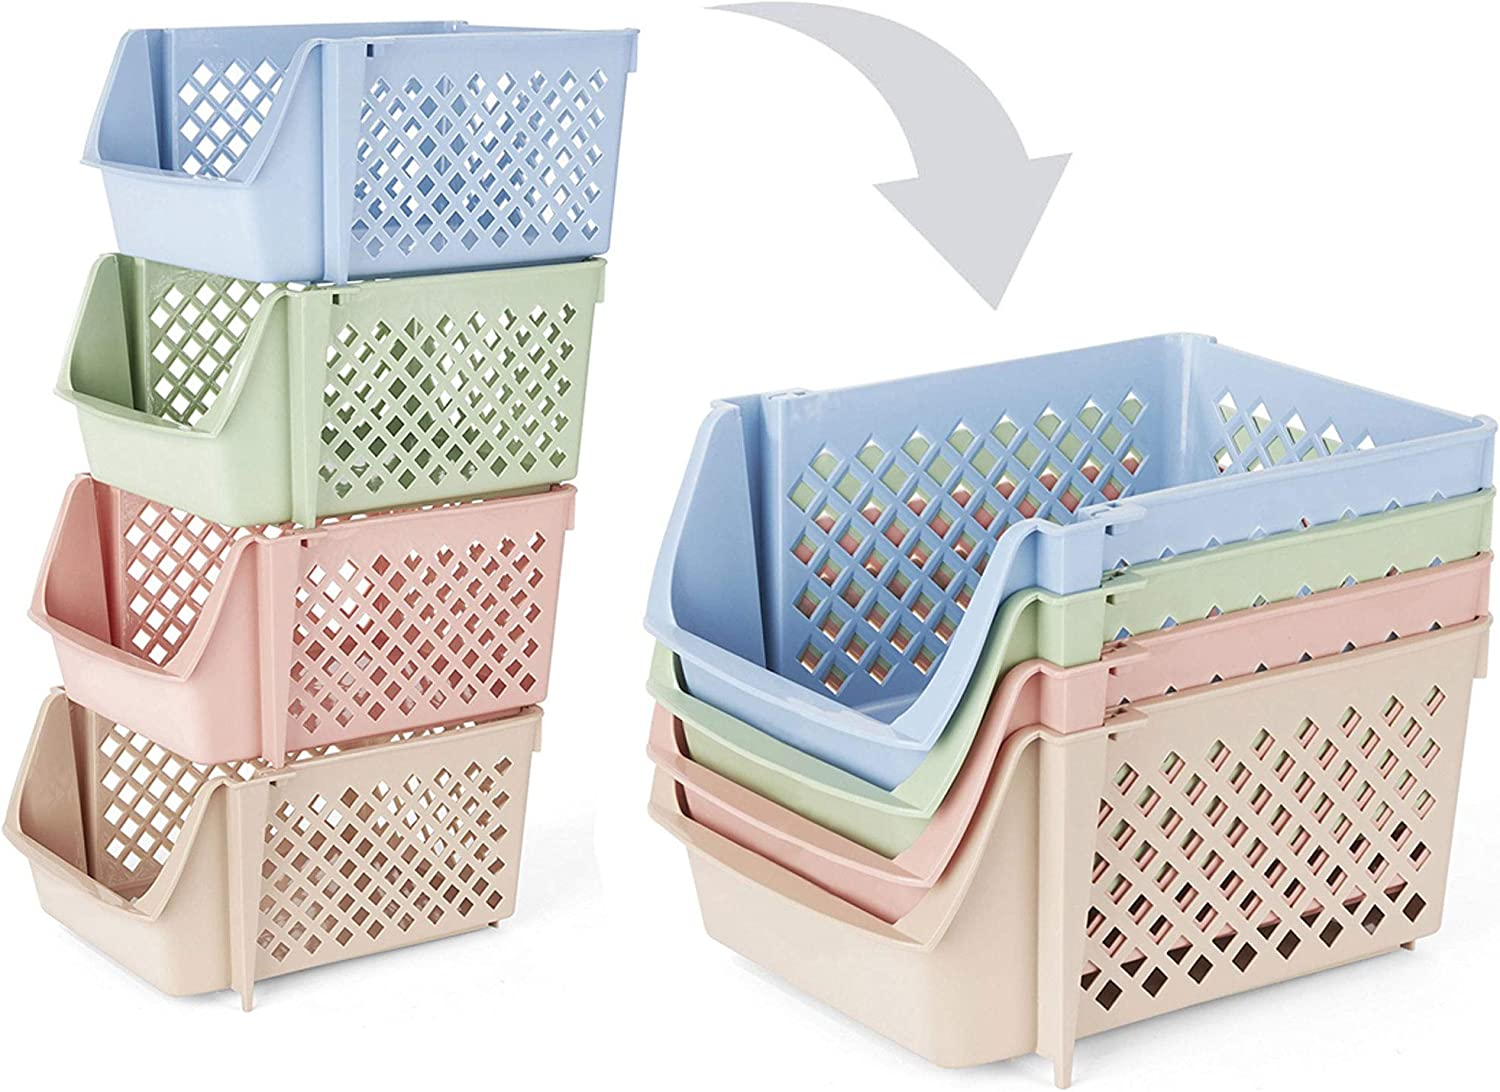 Skywin Plastic Stackable Storage Bins for Pantry - 4-Pack Multi-Colored Stackable Bins For Organizing Food, Kitchen, and Bathroom Essentials